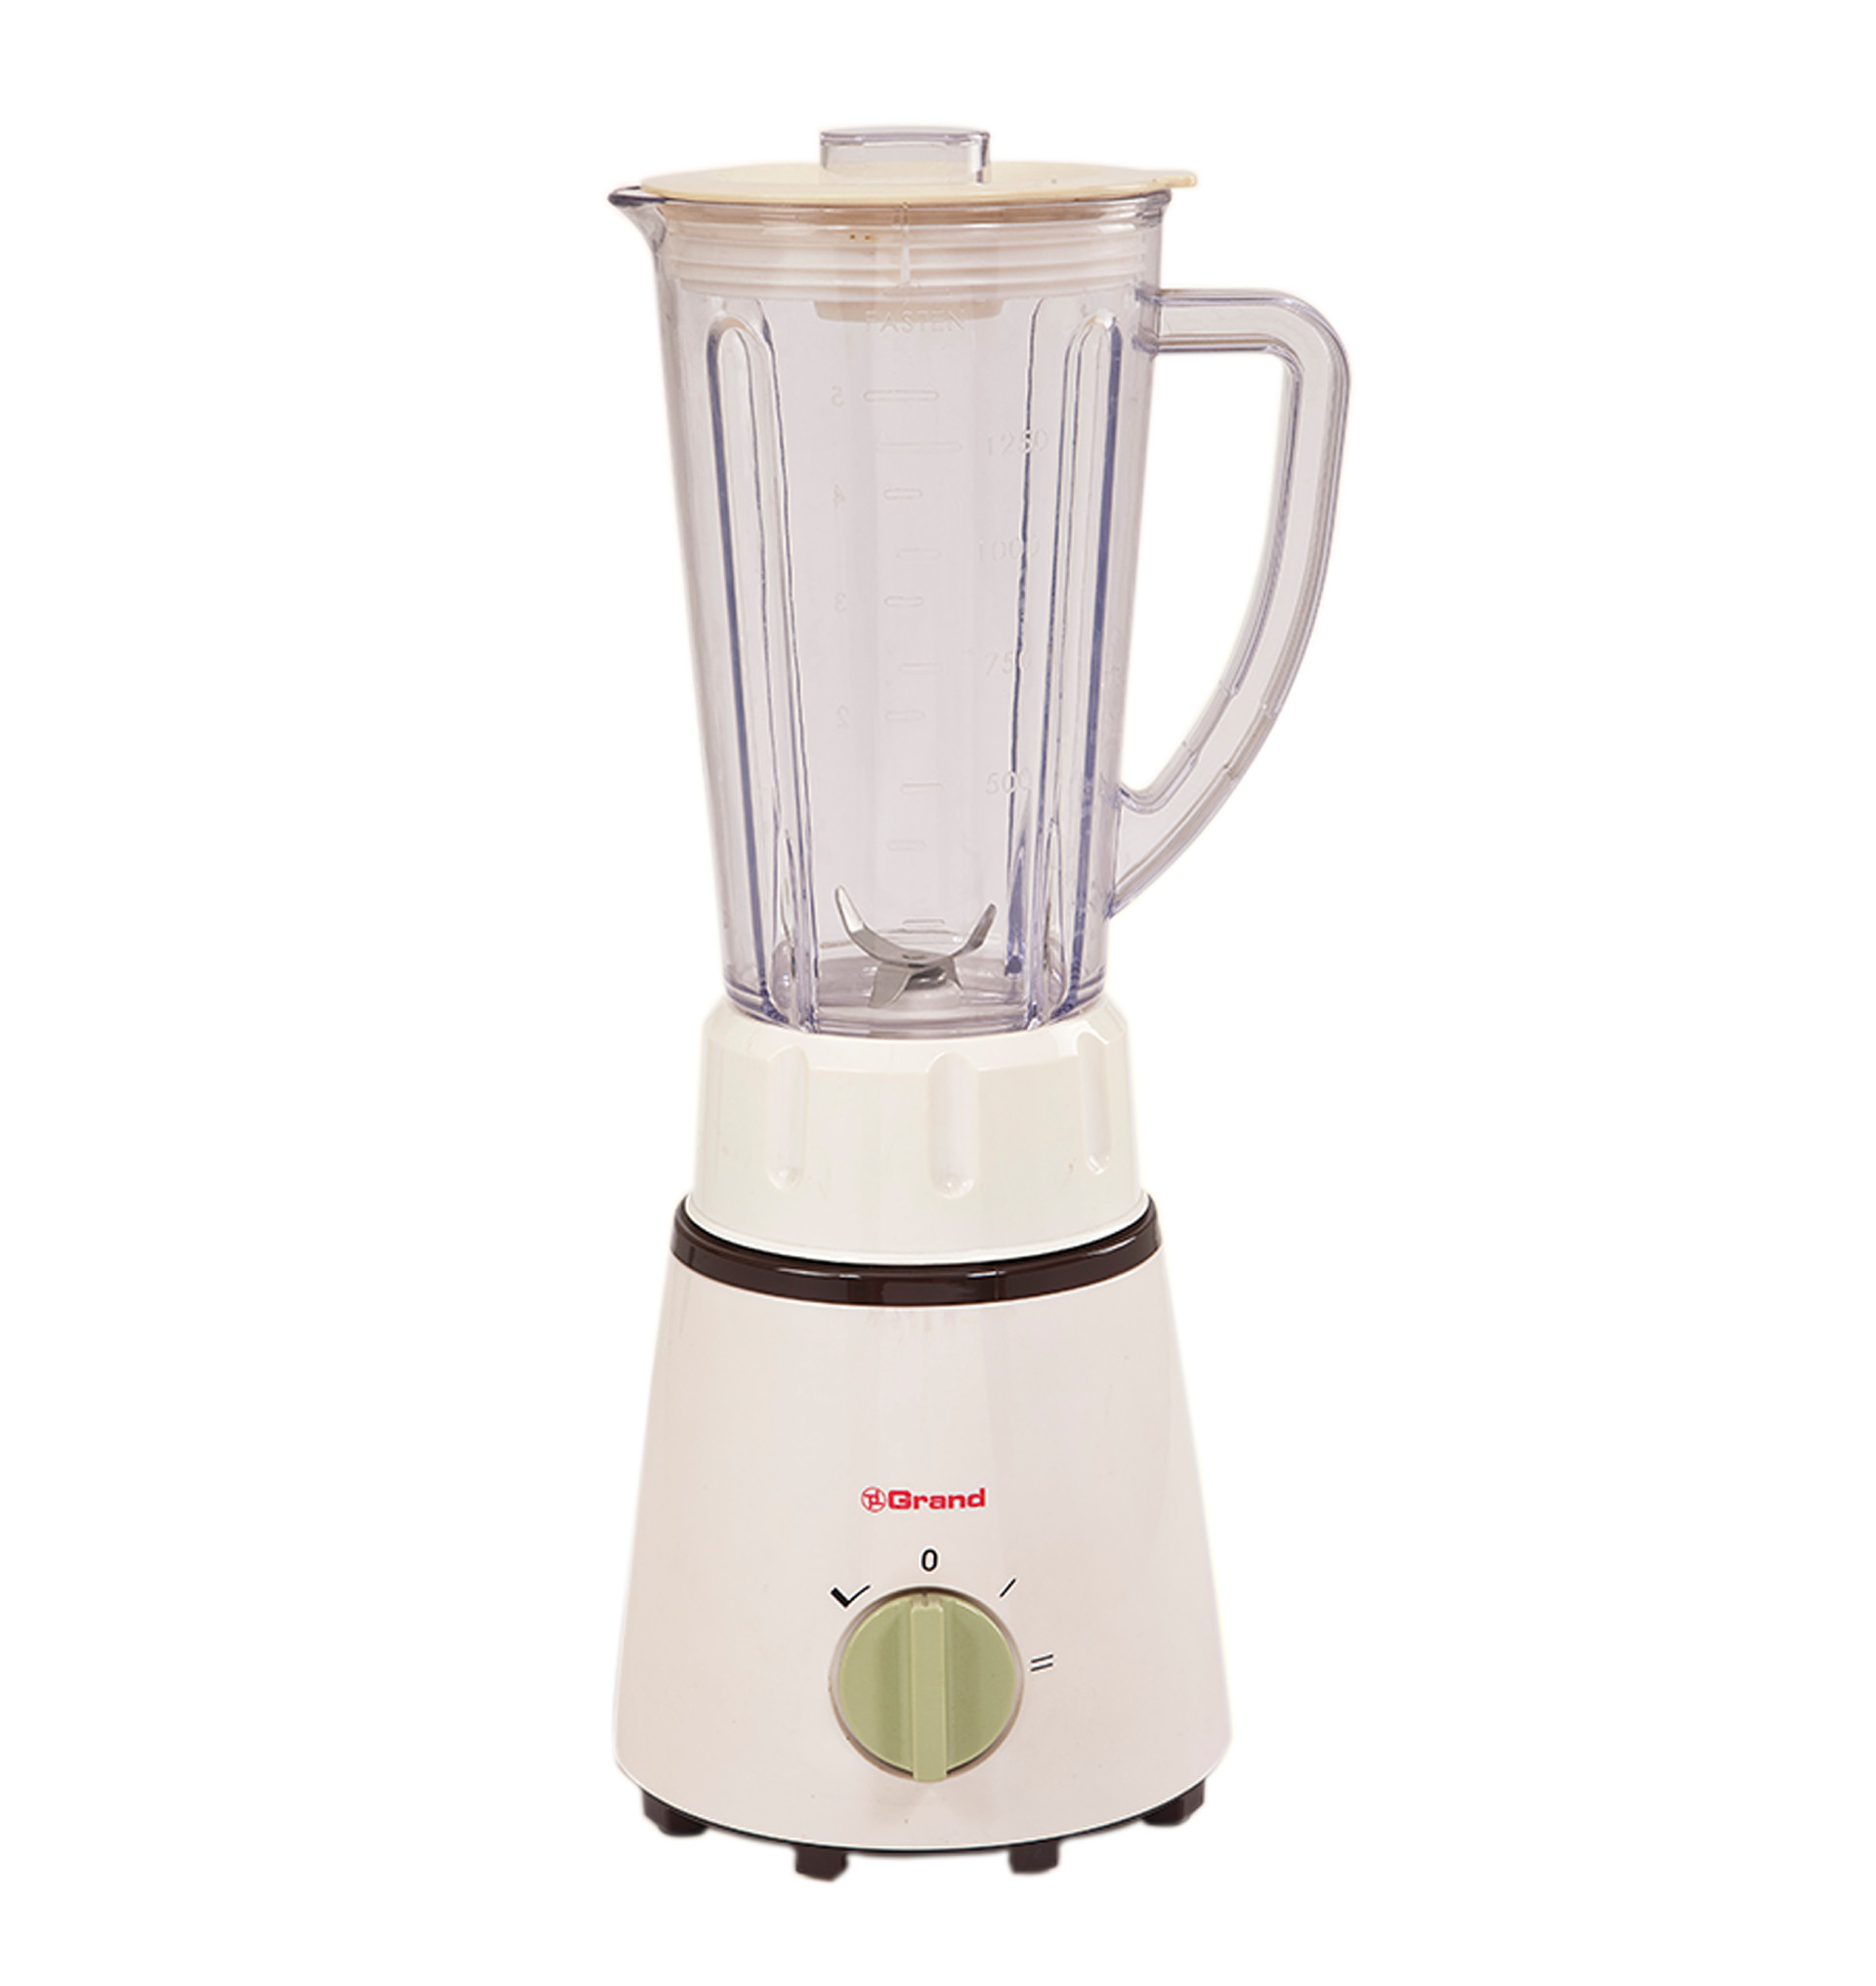 High, Low Speed Switch Multifunctional Blender Mill 2 in 1 B